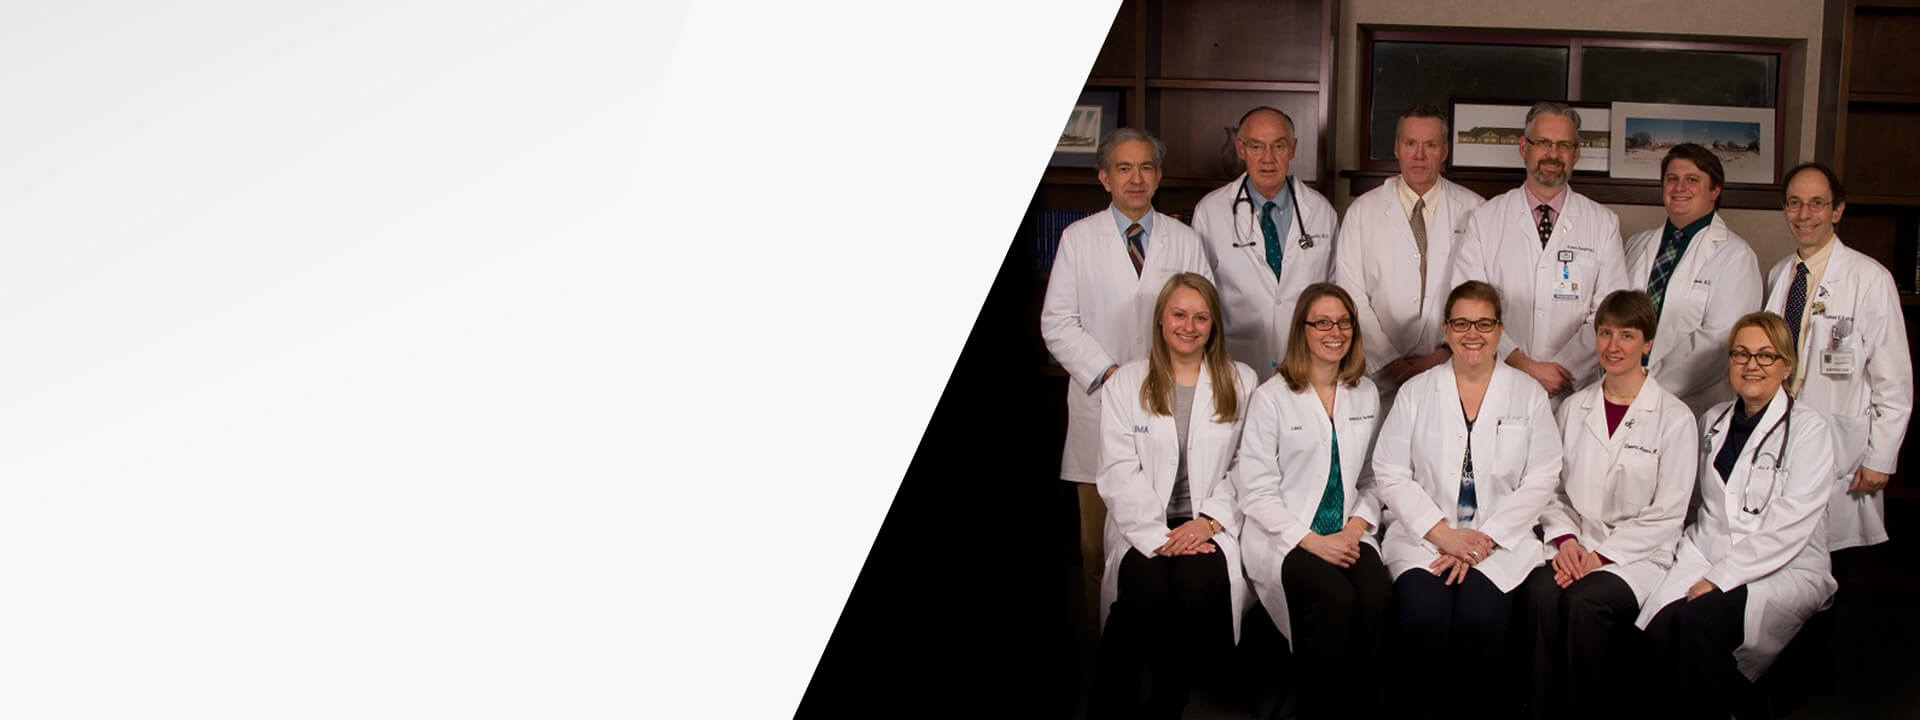 Lebanon Internal Medicine Associates | Lebanon, PA